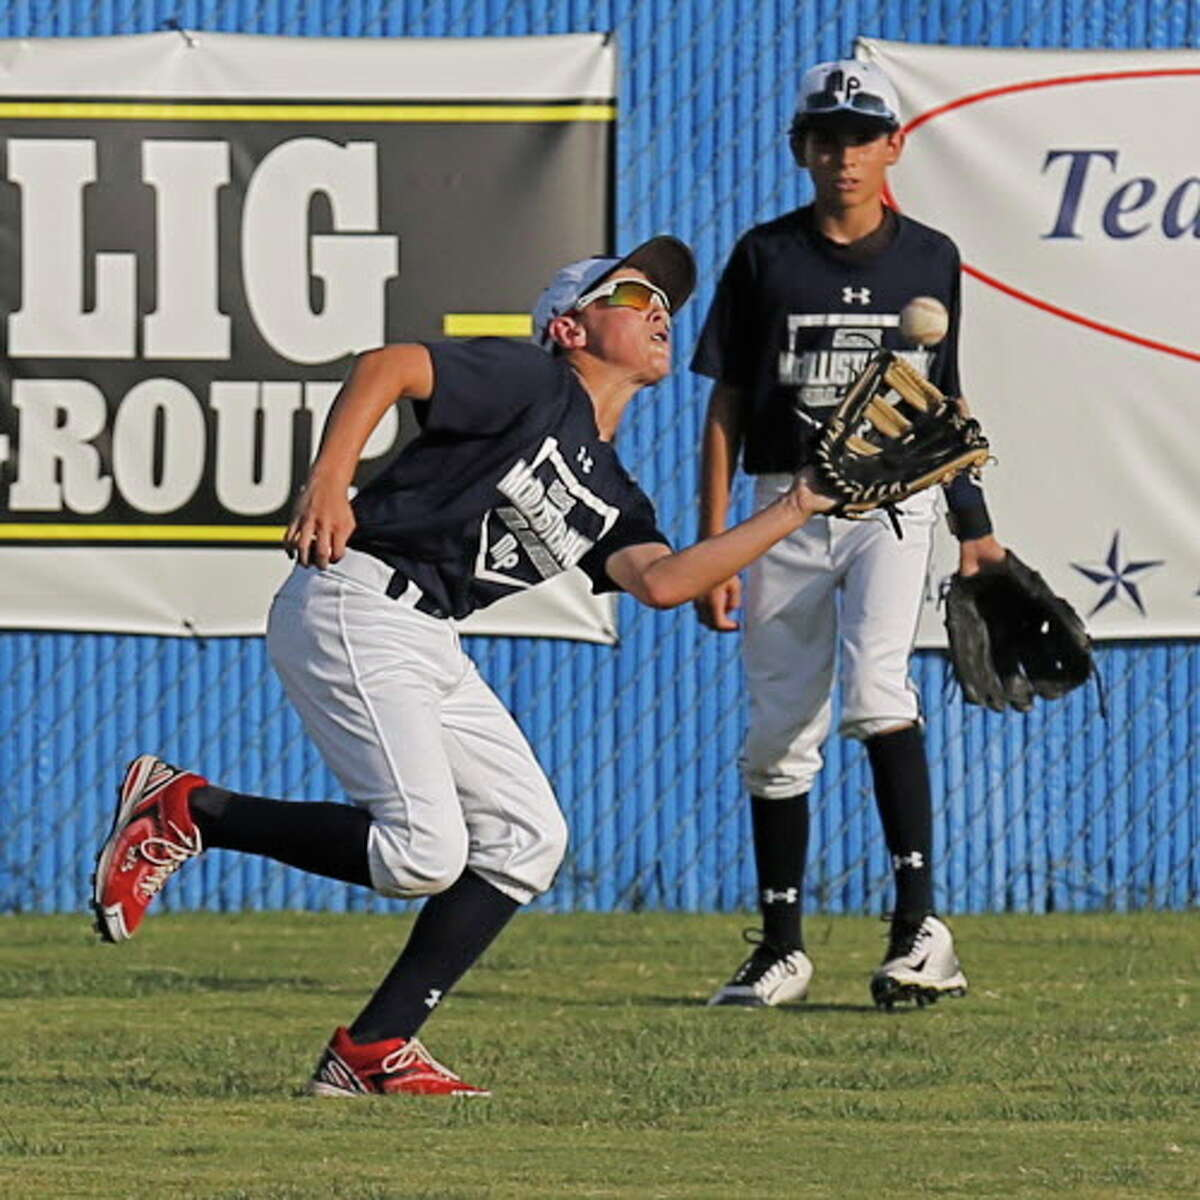 McAllister Park Little League's Zane Raba (left) makes an outfield catch beside teammate Teagan Peeples during practice on Tuesday, July 28, 2015. MPLL also celebrated their state championships in three age divisions of little league baseball with a group photo session. The 11-12 year-old squad will now continue to regional play in Waco and if successful there will move onto the Little League World Series in Willamsport, Penn. MPLL offers many opportunities for boys and girls to play baseball or softball. Fall registration begins Aug. 1. They also offer a Spring Challenger League for special needs kids which starts in March. The boys will play Louisiana in Waco on Aug. 7. (Kin Man Hui/San Antonio Express-News)